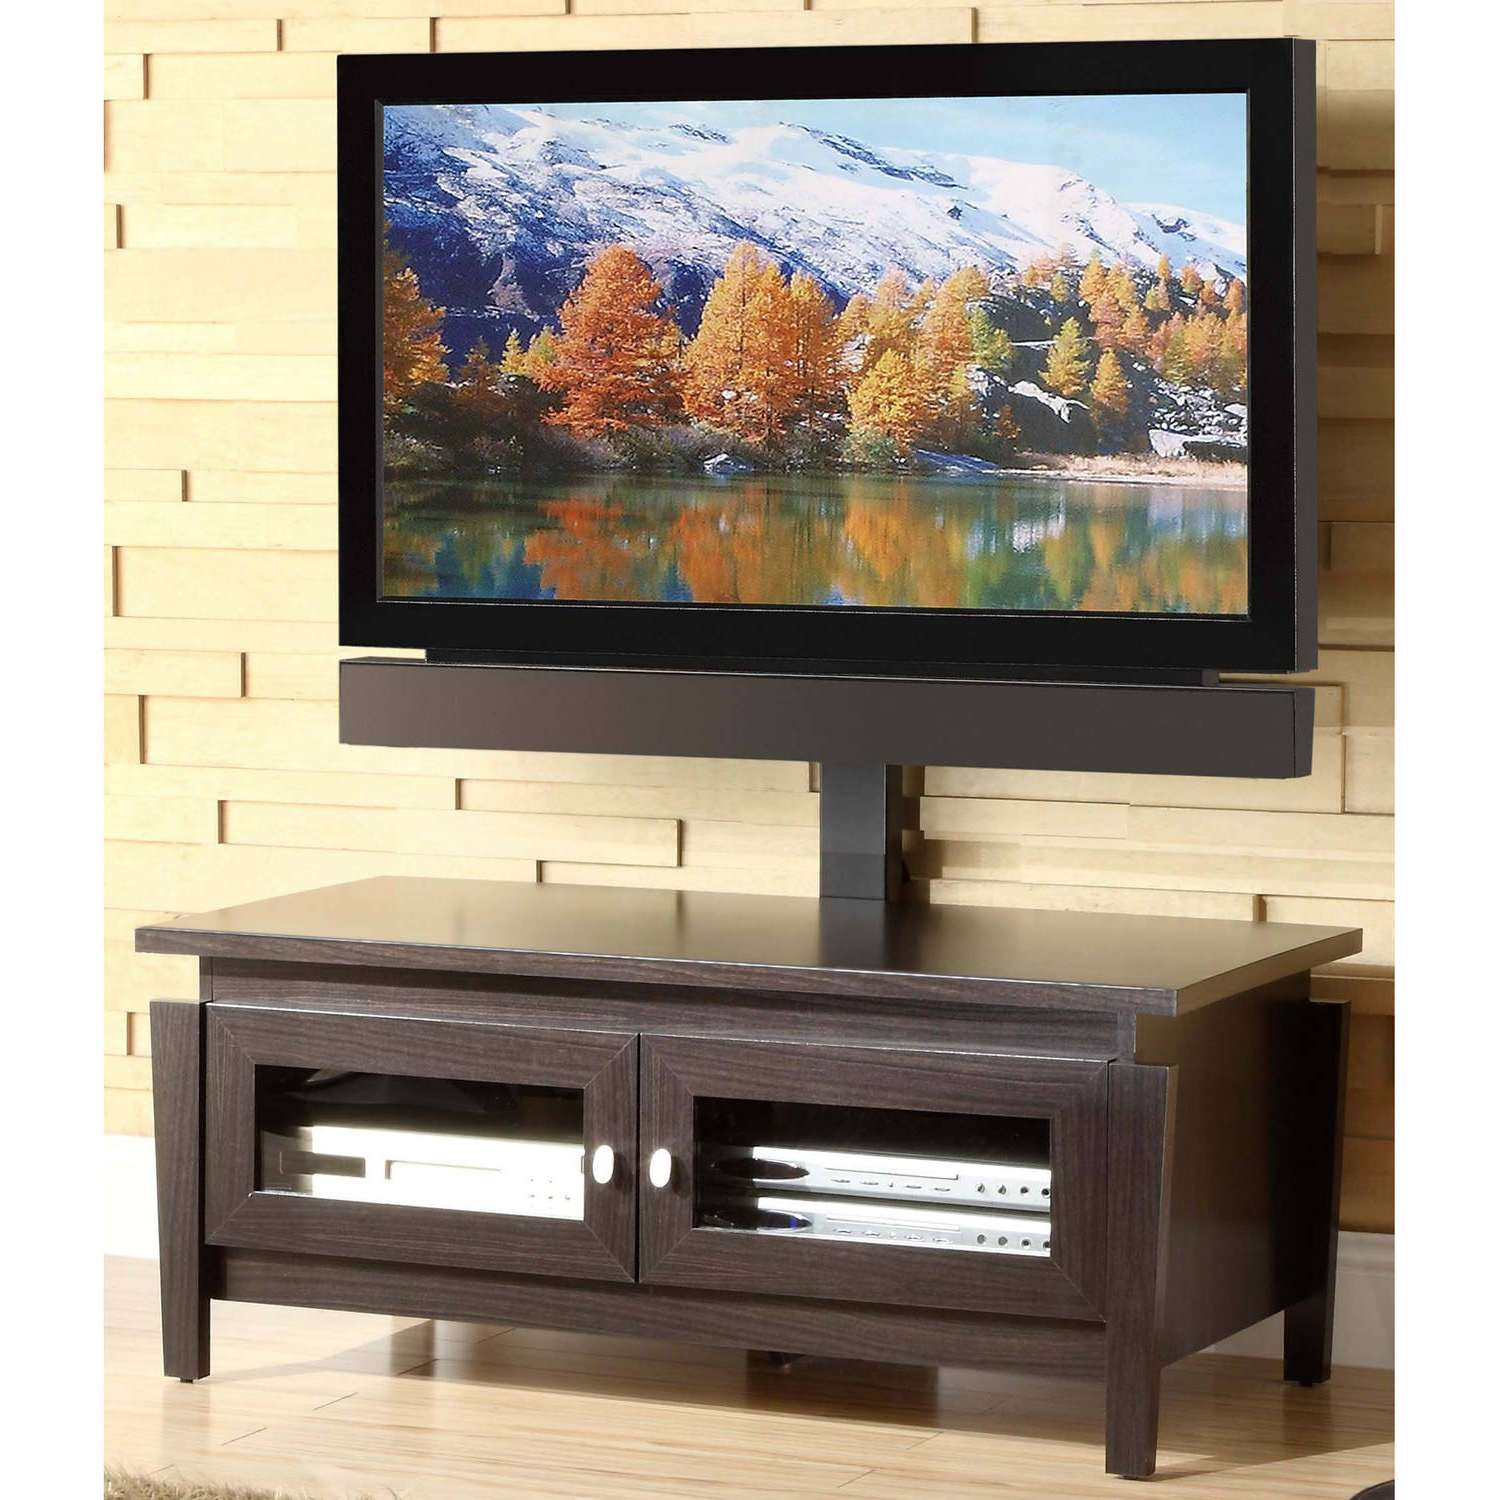 Decorating: Whalen Flat Panel Tv Console | Whalen Swivel Tv Stand Regarding Wood Tv Stands With Swivel Mount (View 2 of 15)